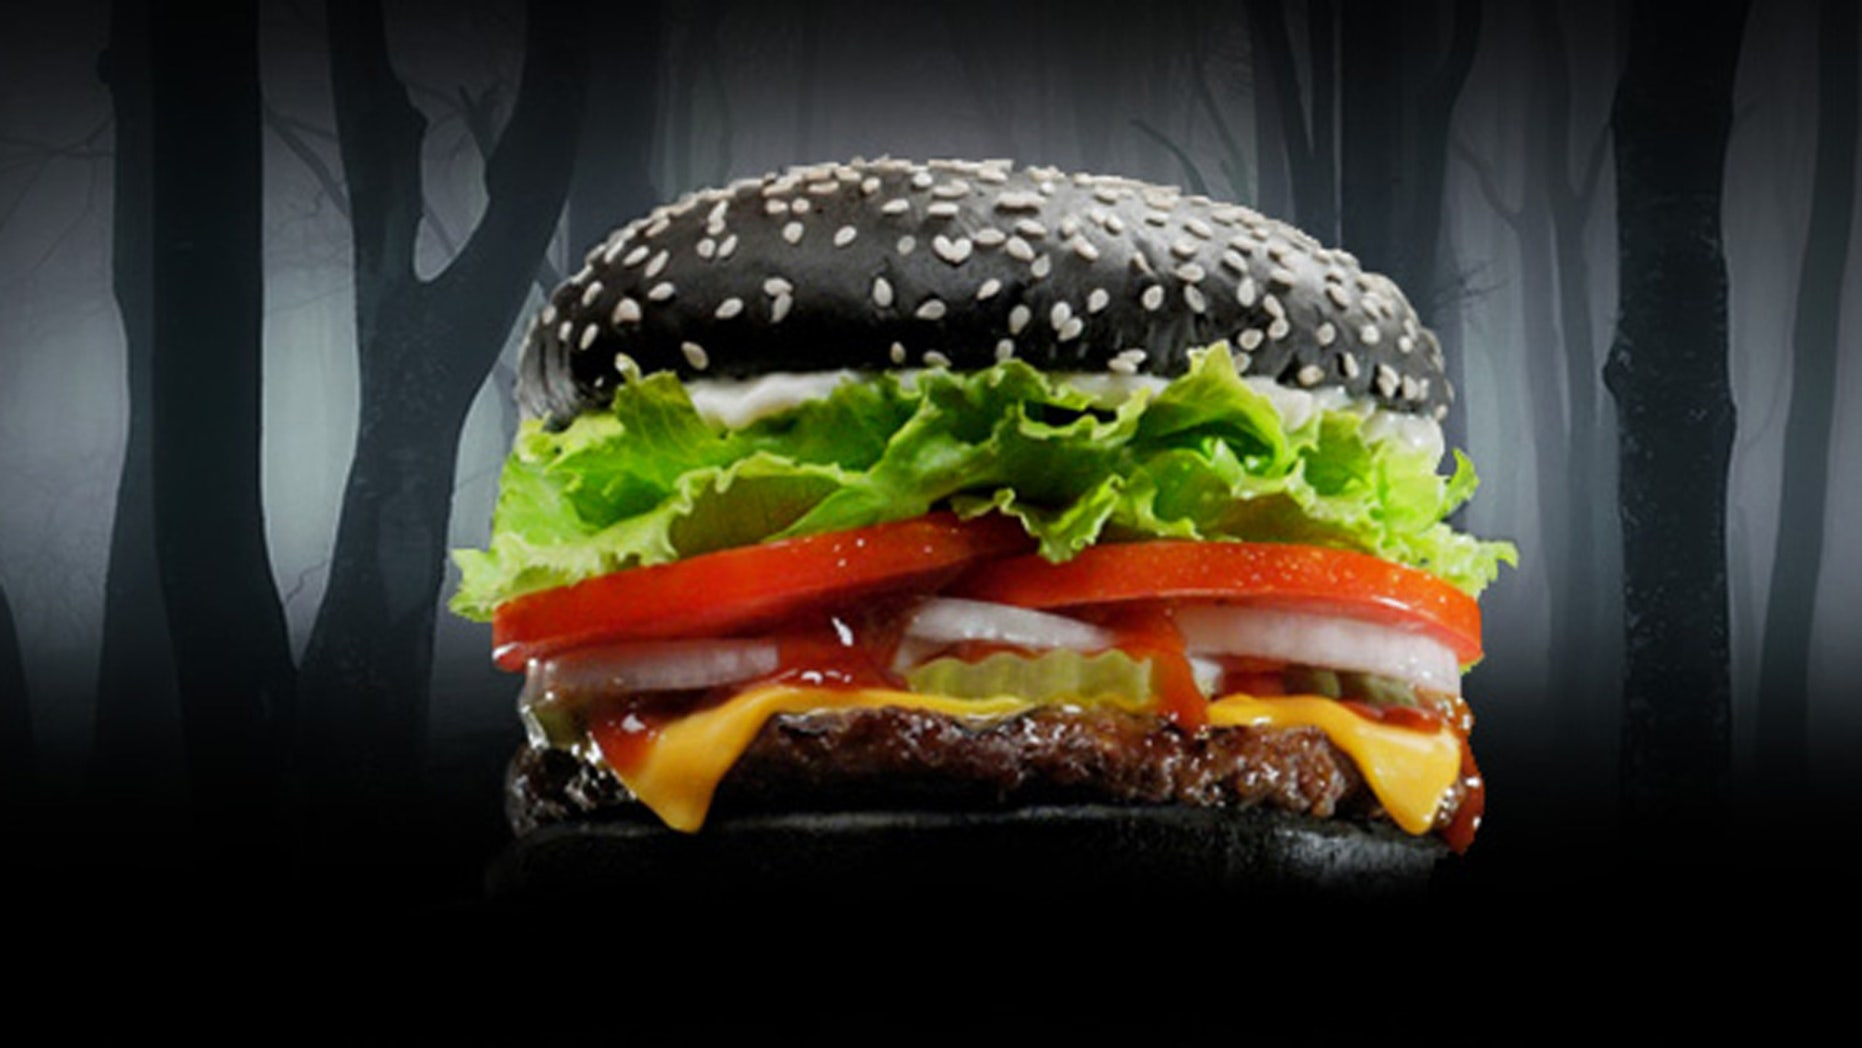 The A.1 Halloween burger has some spooky digestive side effects.